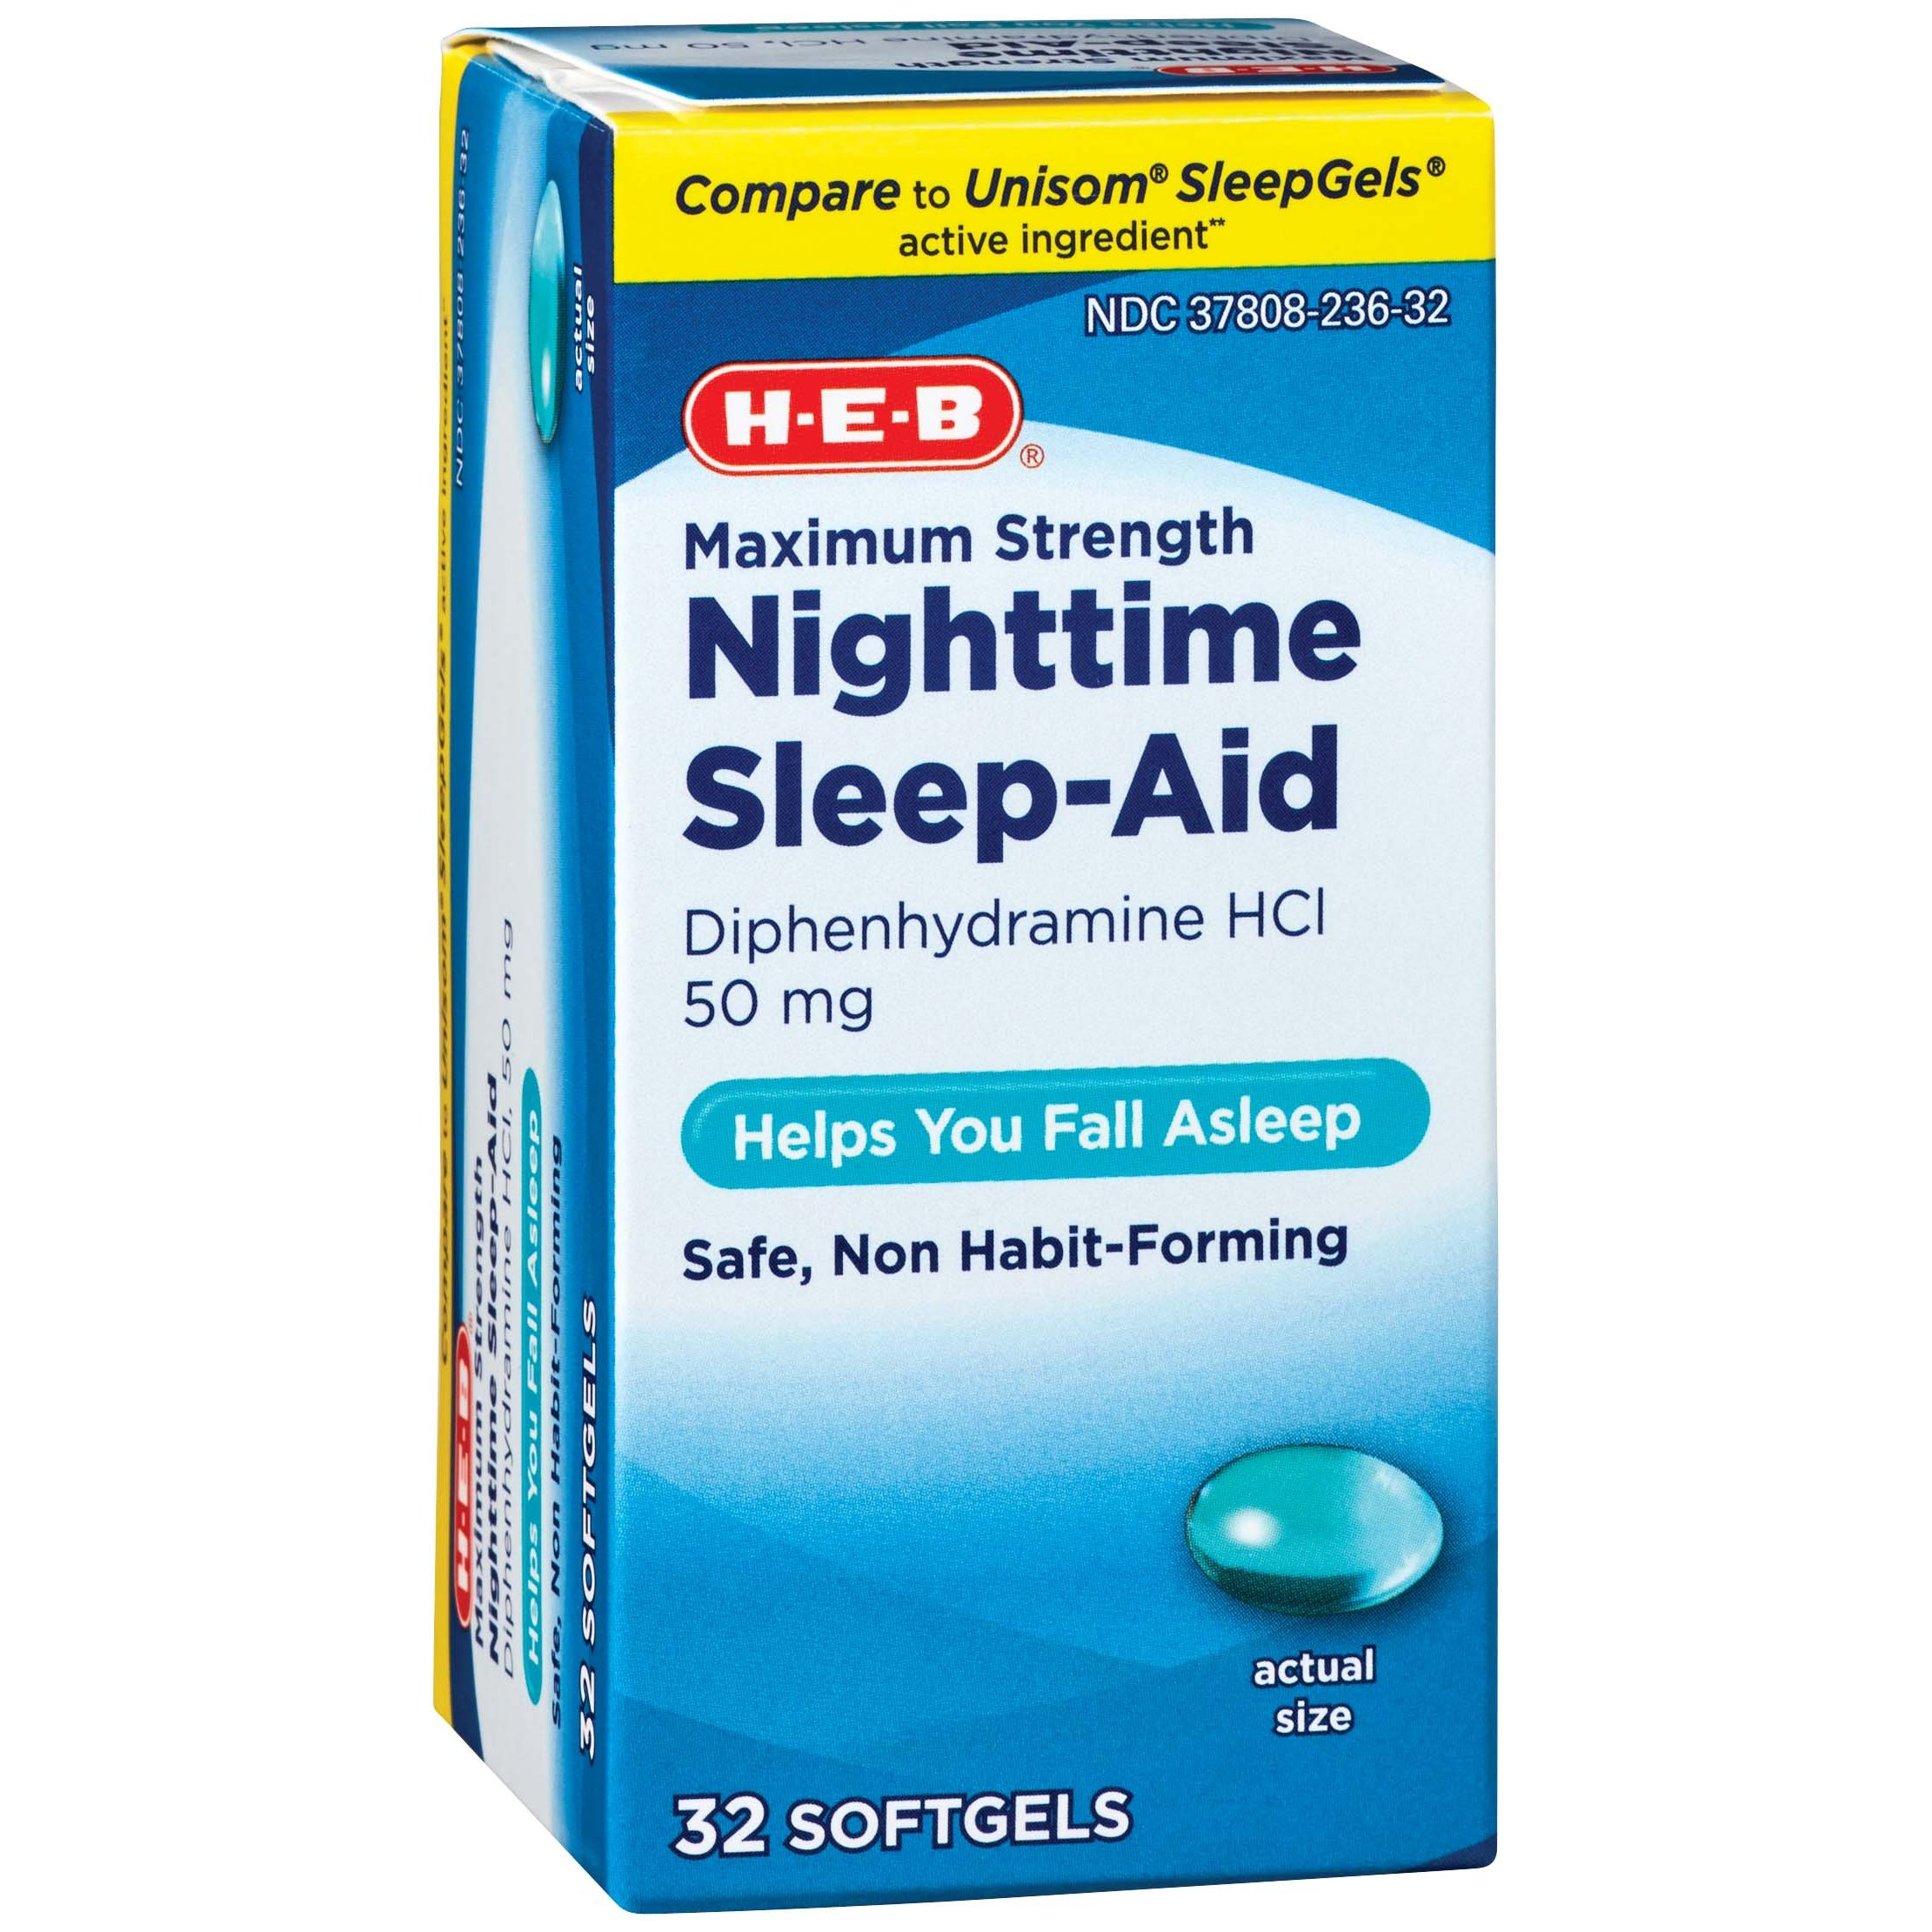 h u2011e u2011b sleep aid maximum strength nighttime sleep u2011aid softgels